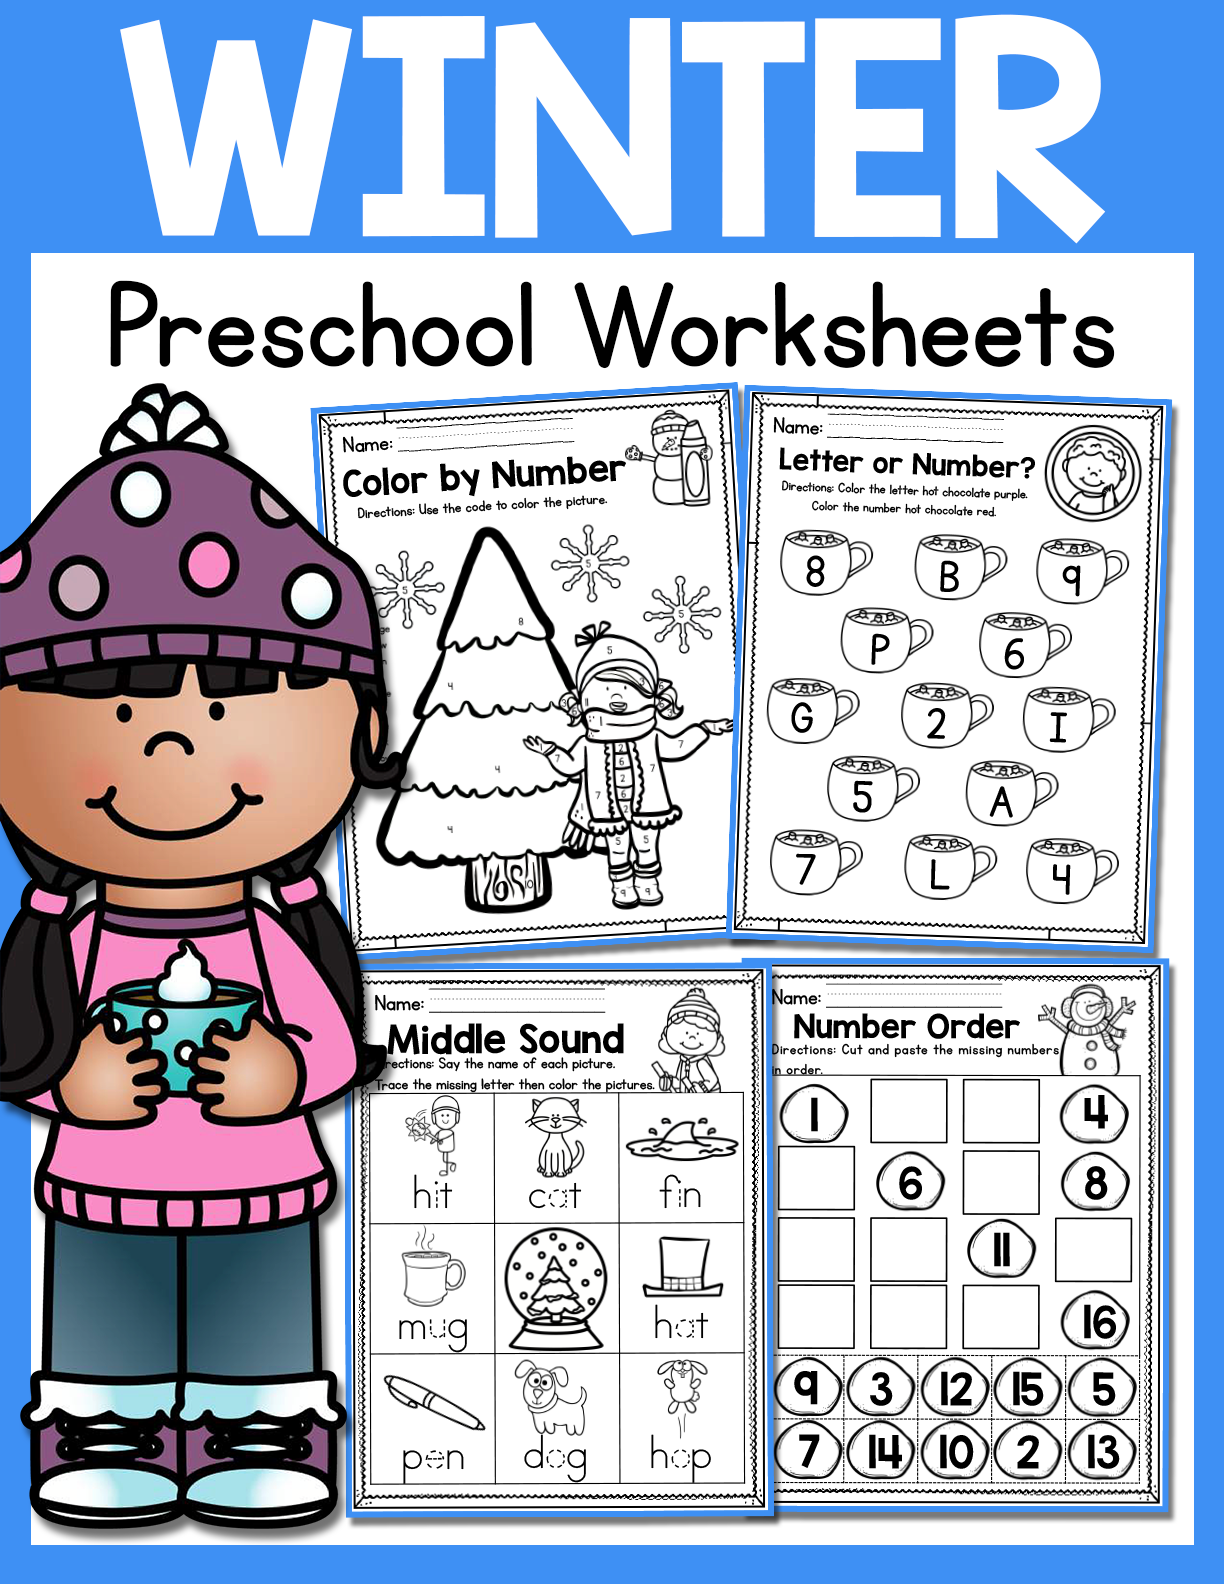 Winter Preschool Worksheets January Made By Teachers Preschool Winter Worksheets Winter Preschool Preschool Worksheets [ 1584 x 1224 Pixel ]